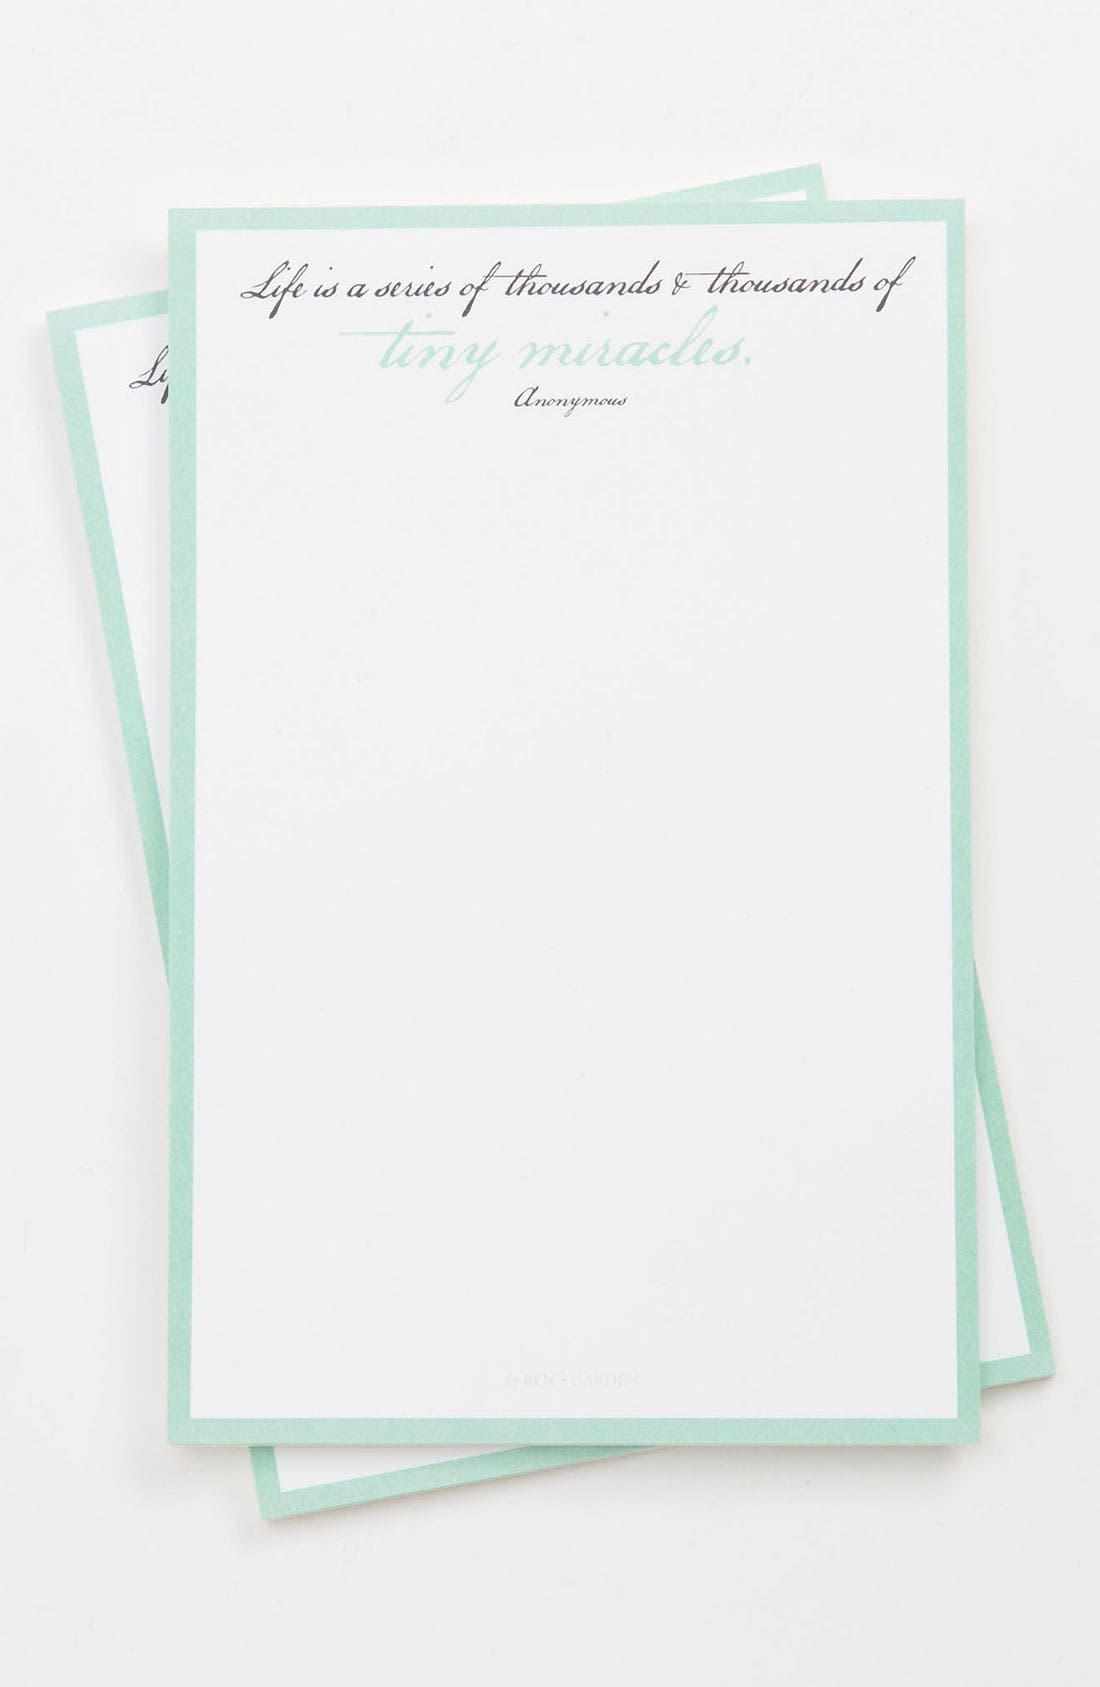 Alternate Image 1 Selected - Ben's Garden 'Tiny Miracles' Notepads (2-Pack)